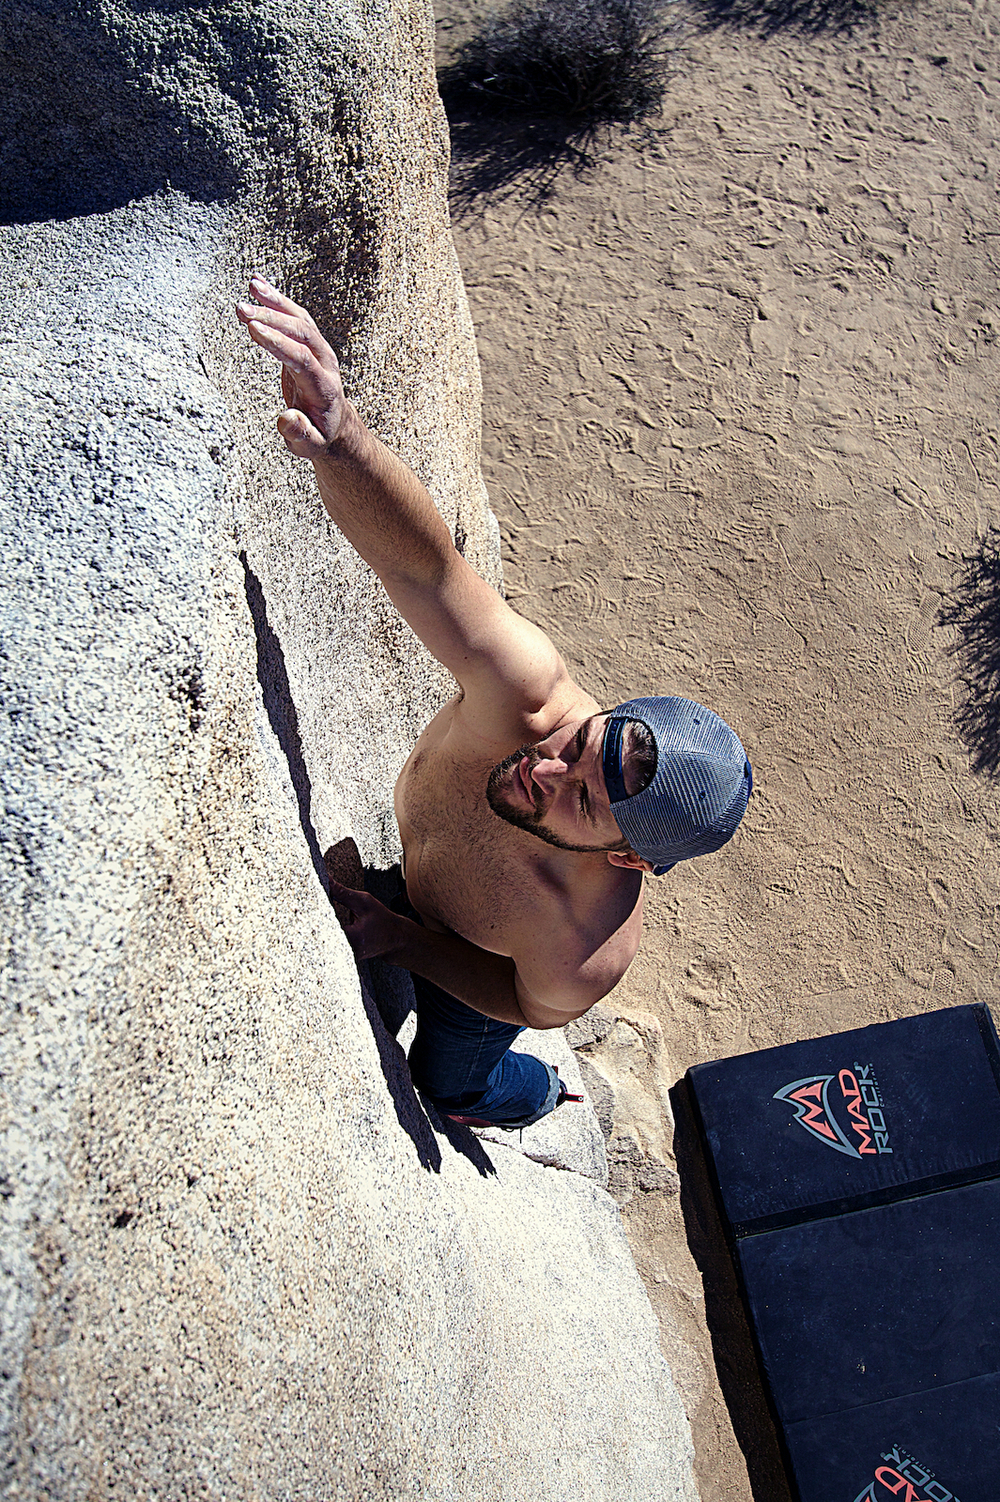 Cody reaching the top on Pinhead... my favorite (no star) v1